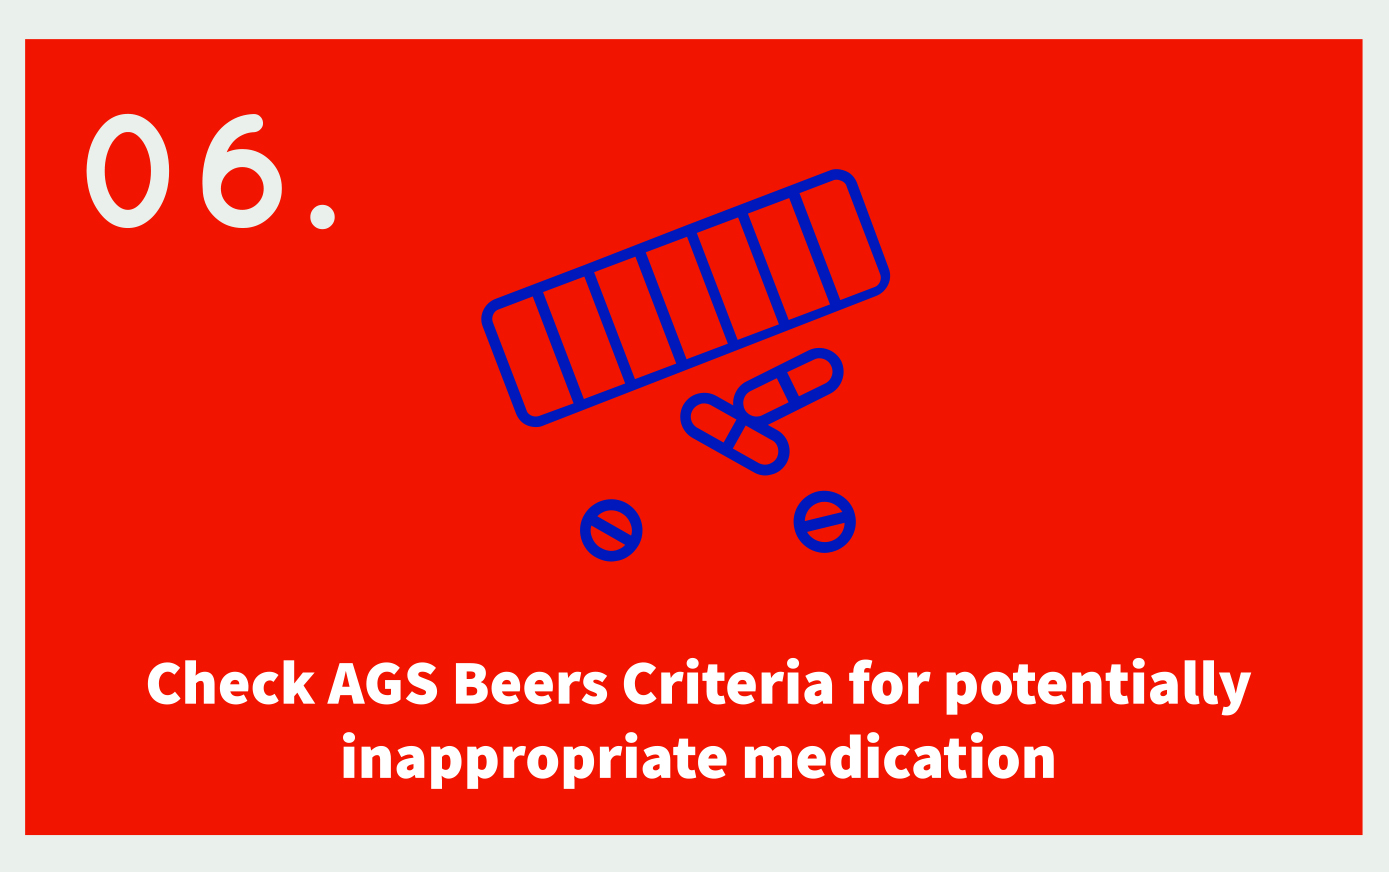 06. Check AGS Beers Criteria for potentially inappropriate medication